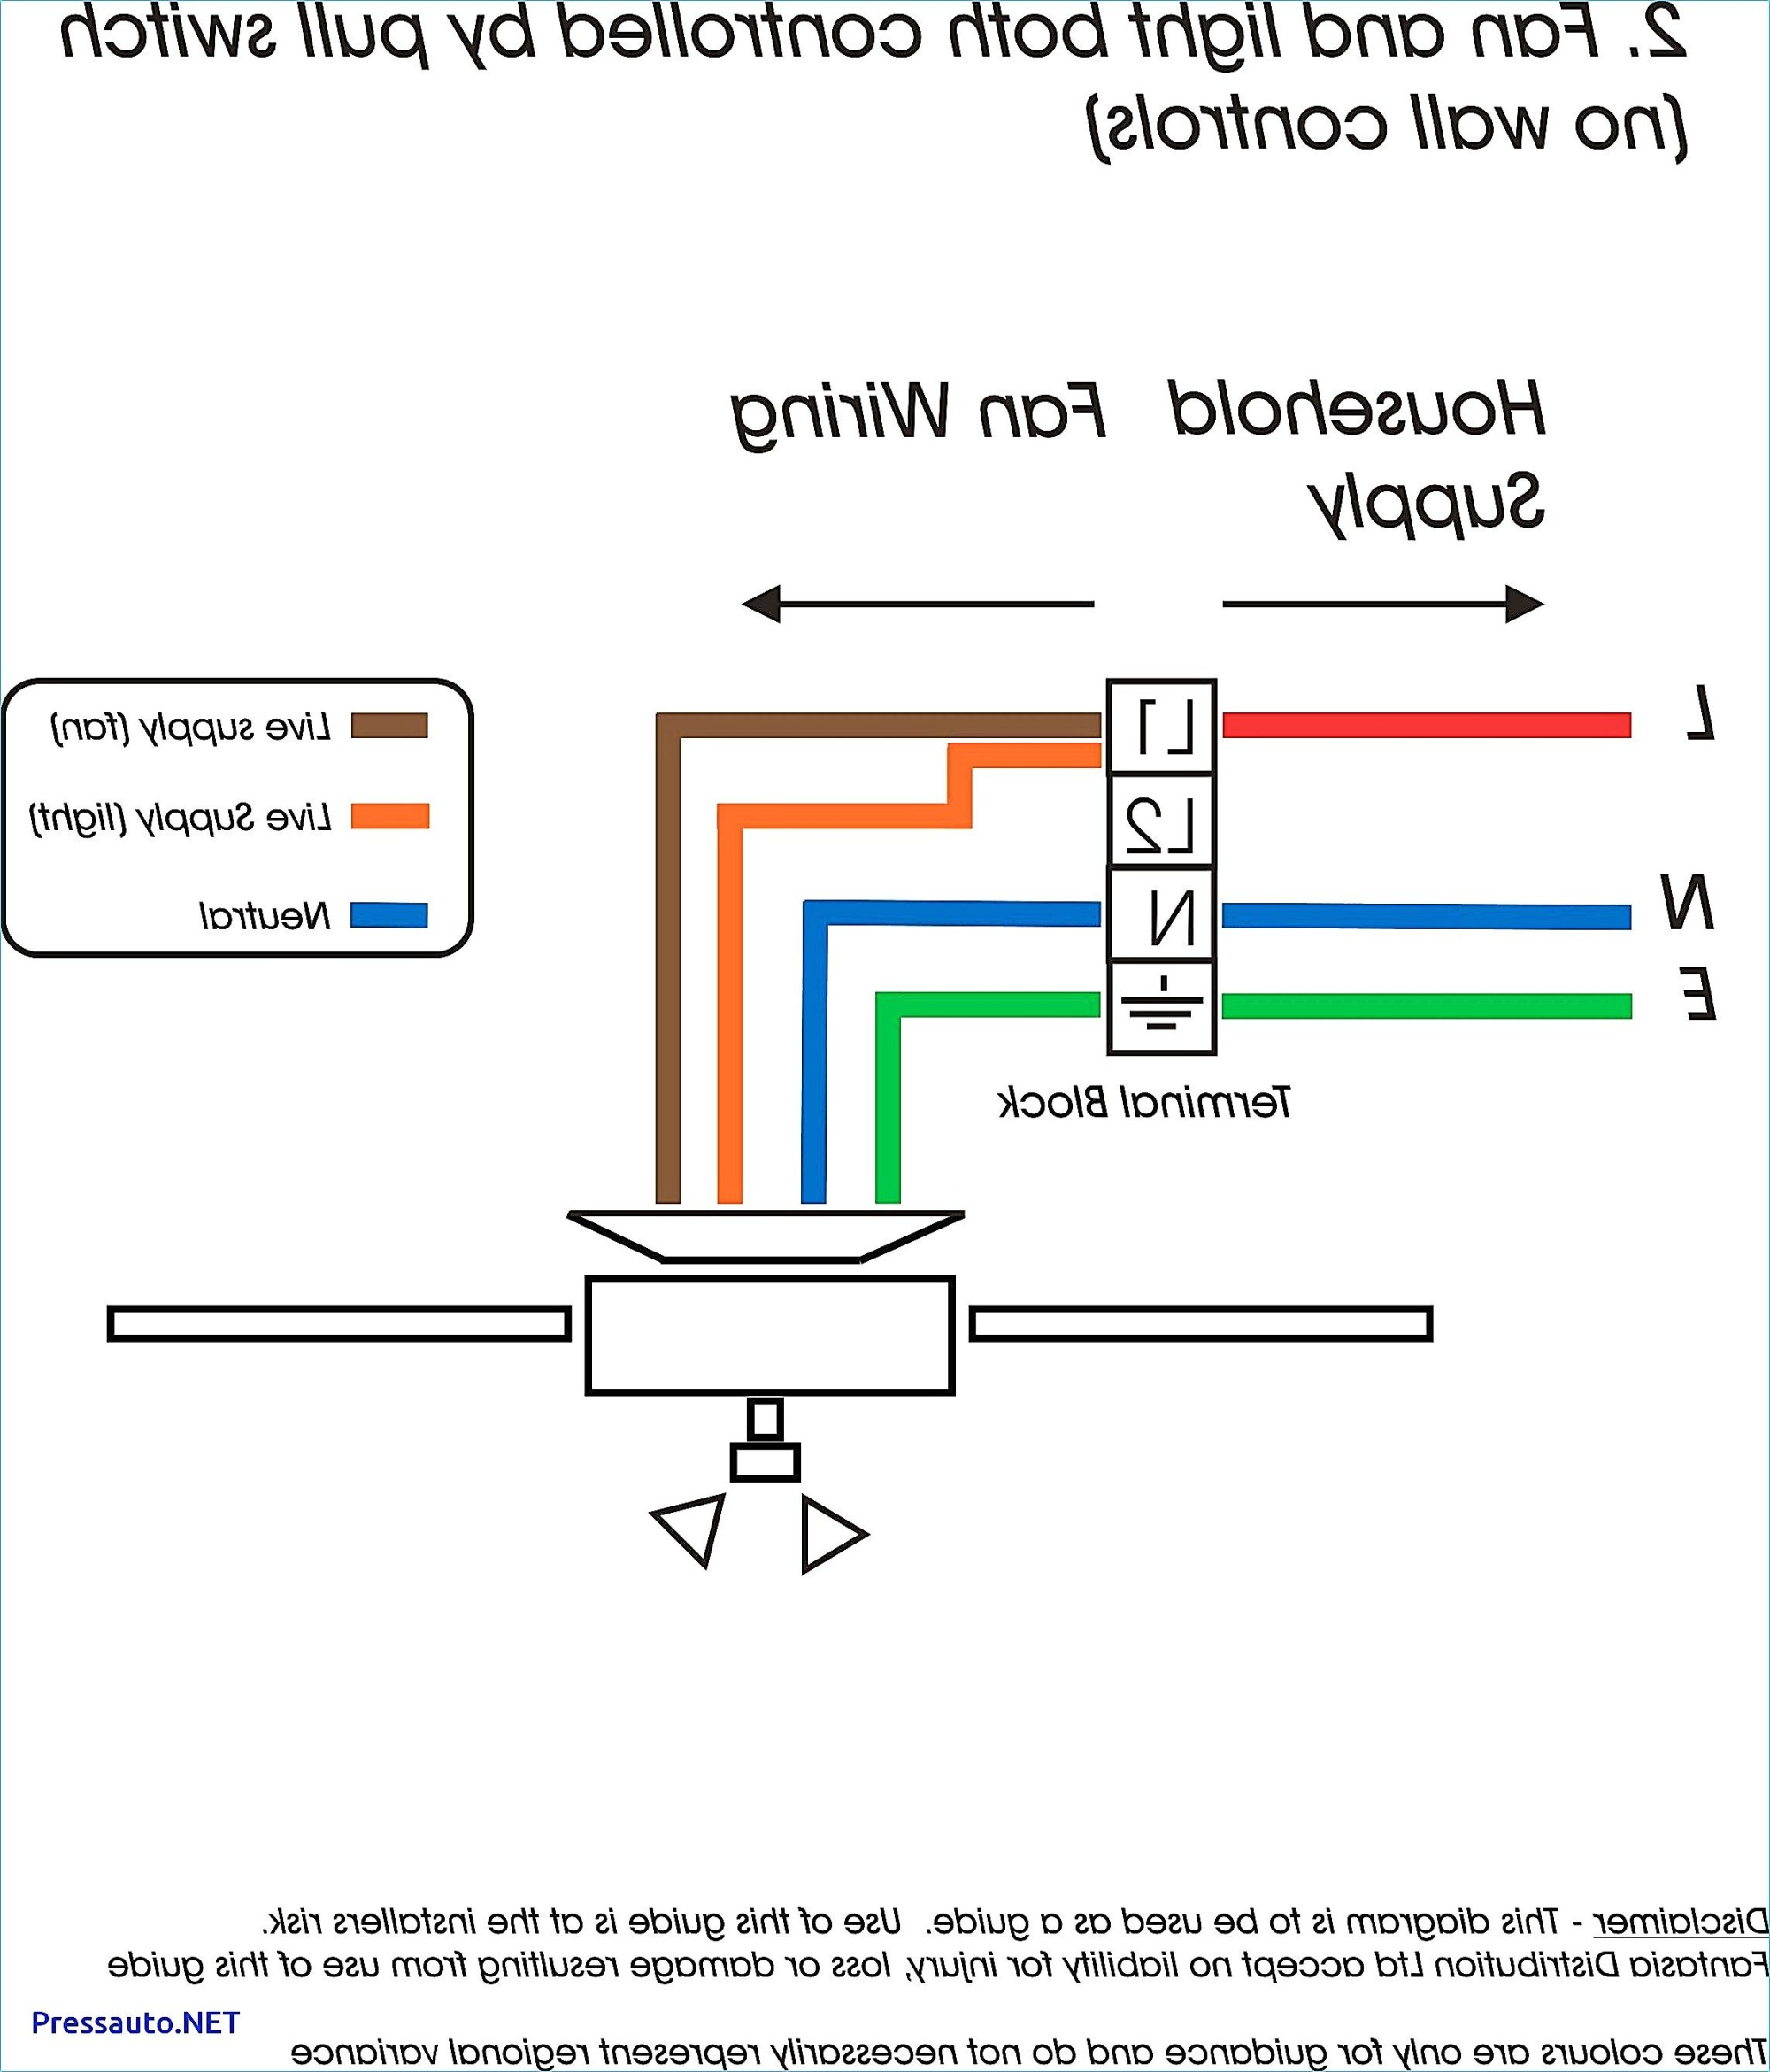 hight resolution of embraco relay wiring wiring library rh 98 codingcommunity de embraco refrigerator compressor install diagram embraco compressor wiring